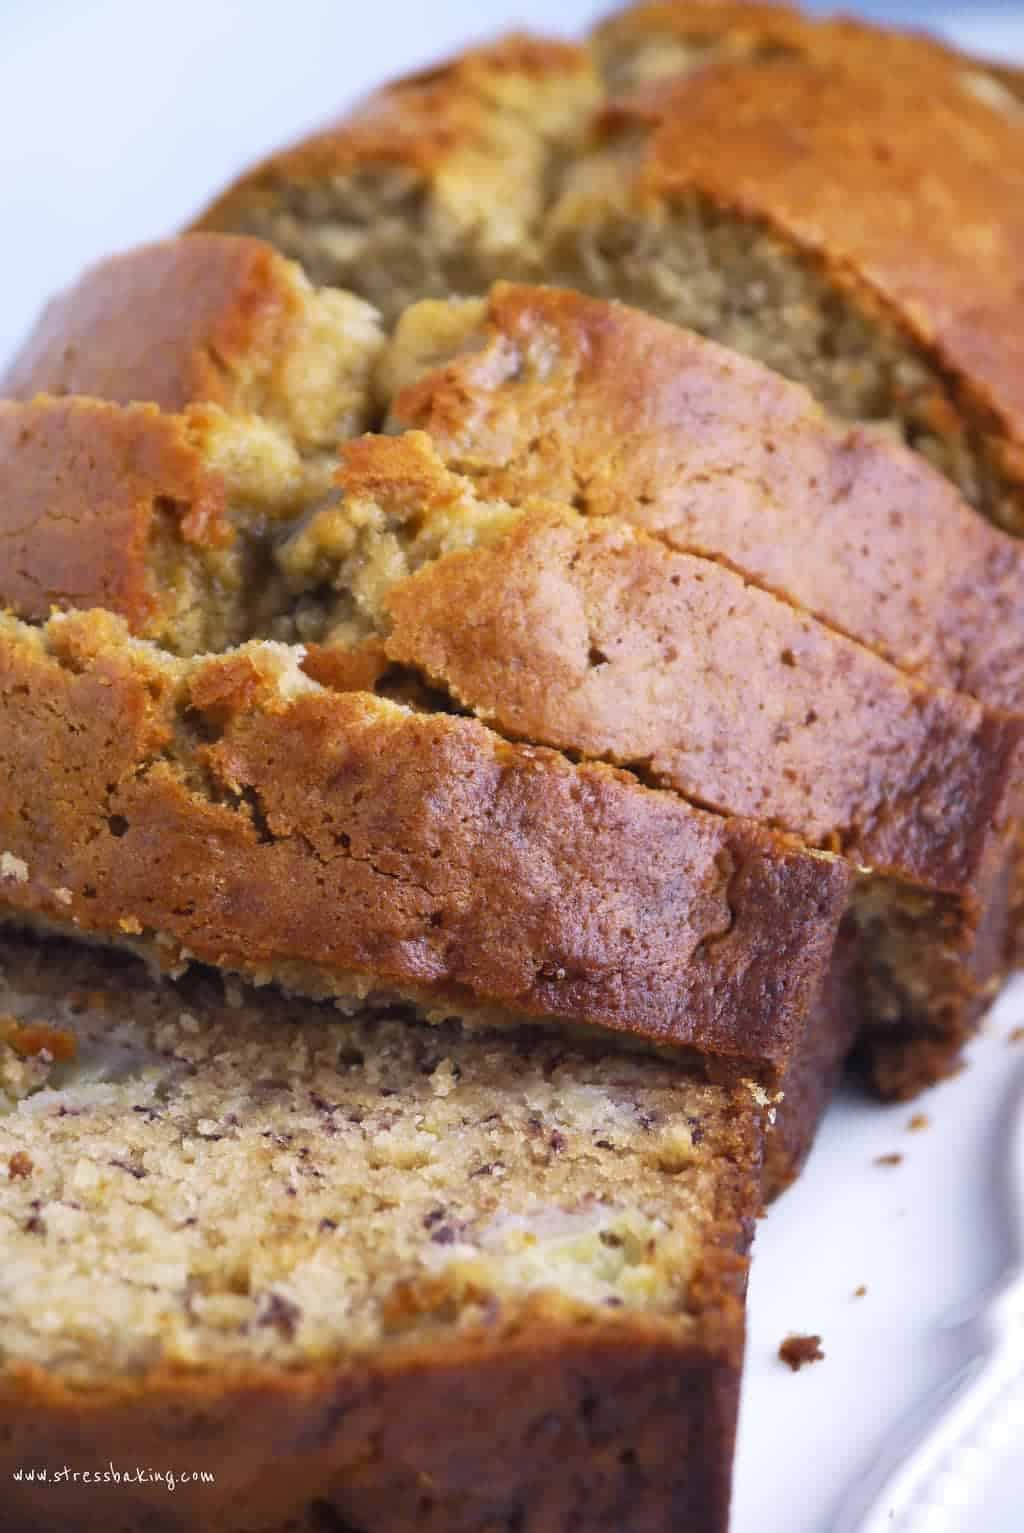 A loaf of golden banana bread, sliced on a white plate